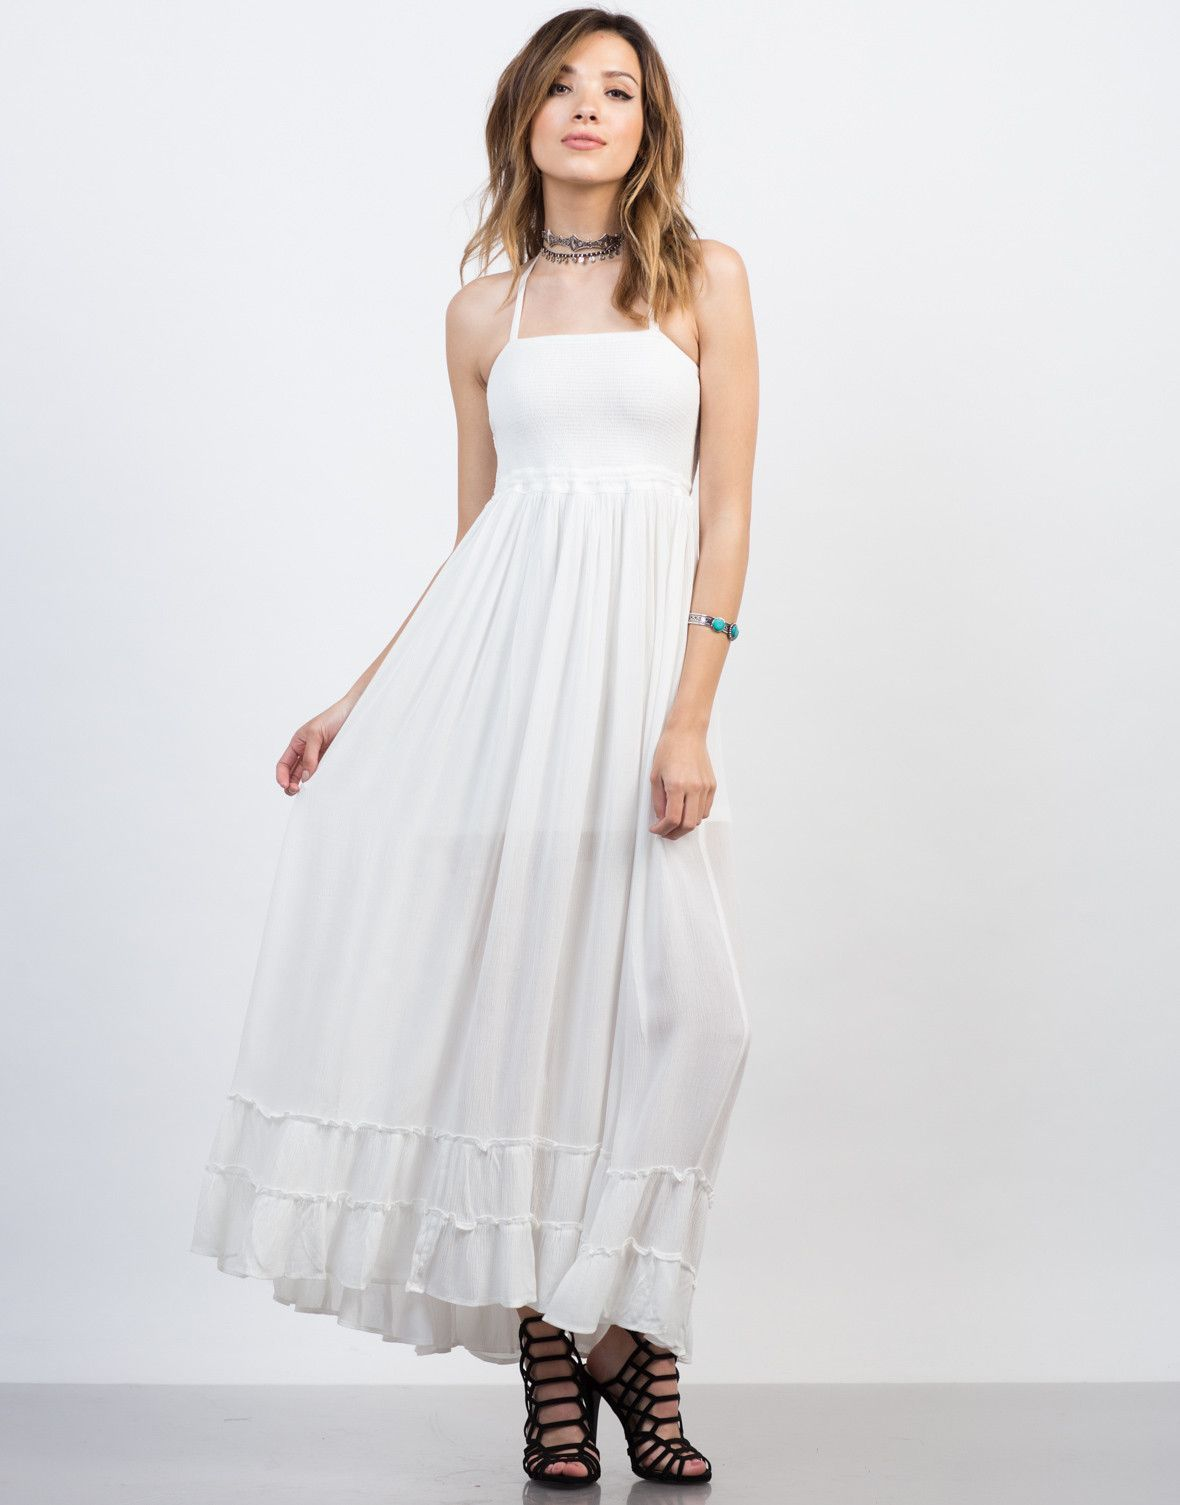 d00c3d6d8c9 Summer vacation is here and this Frilly Halter Maxi Dress screams vacation.  This dress looks perfect when paired with stacked bracelets